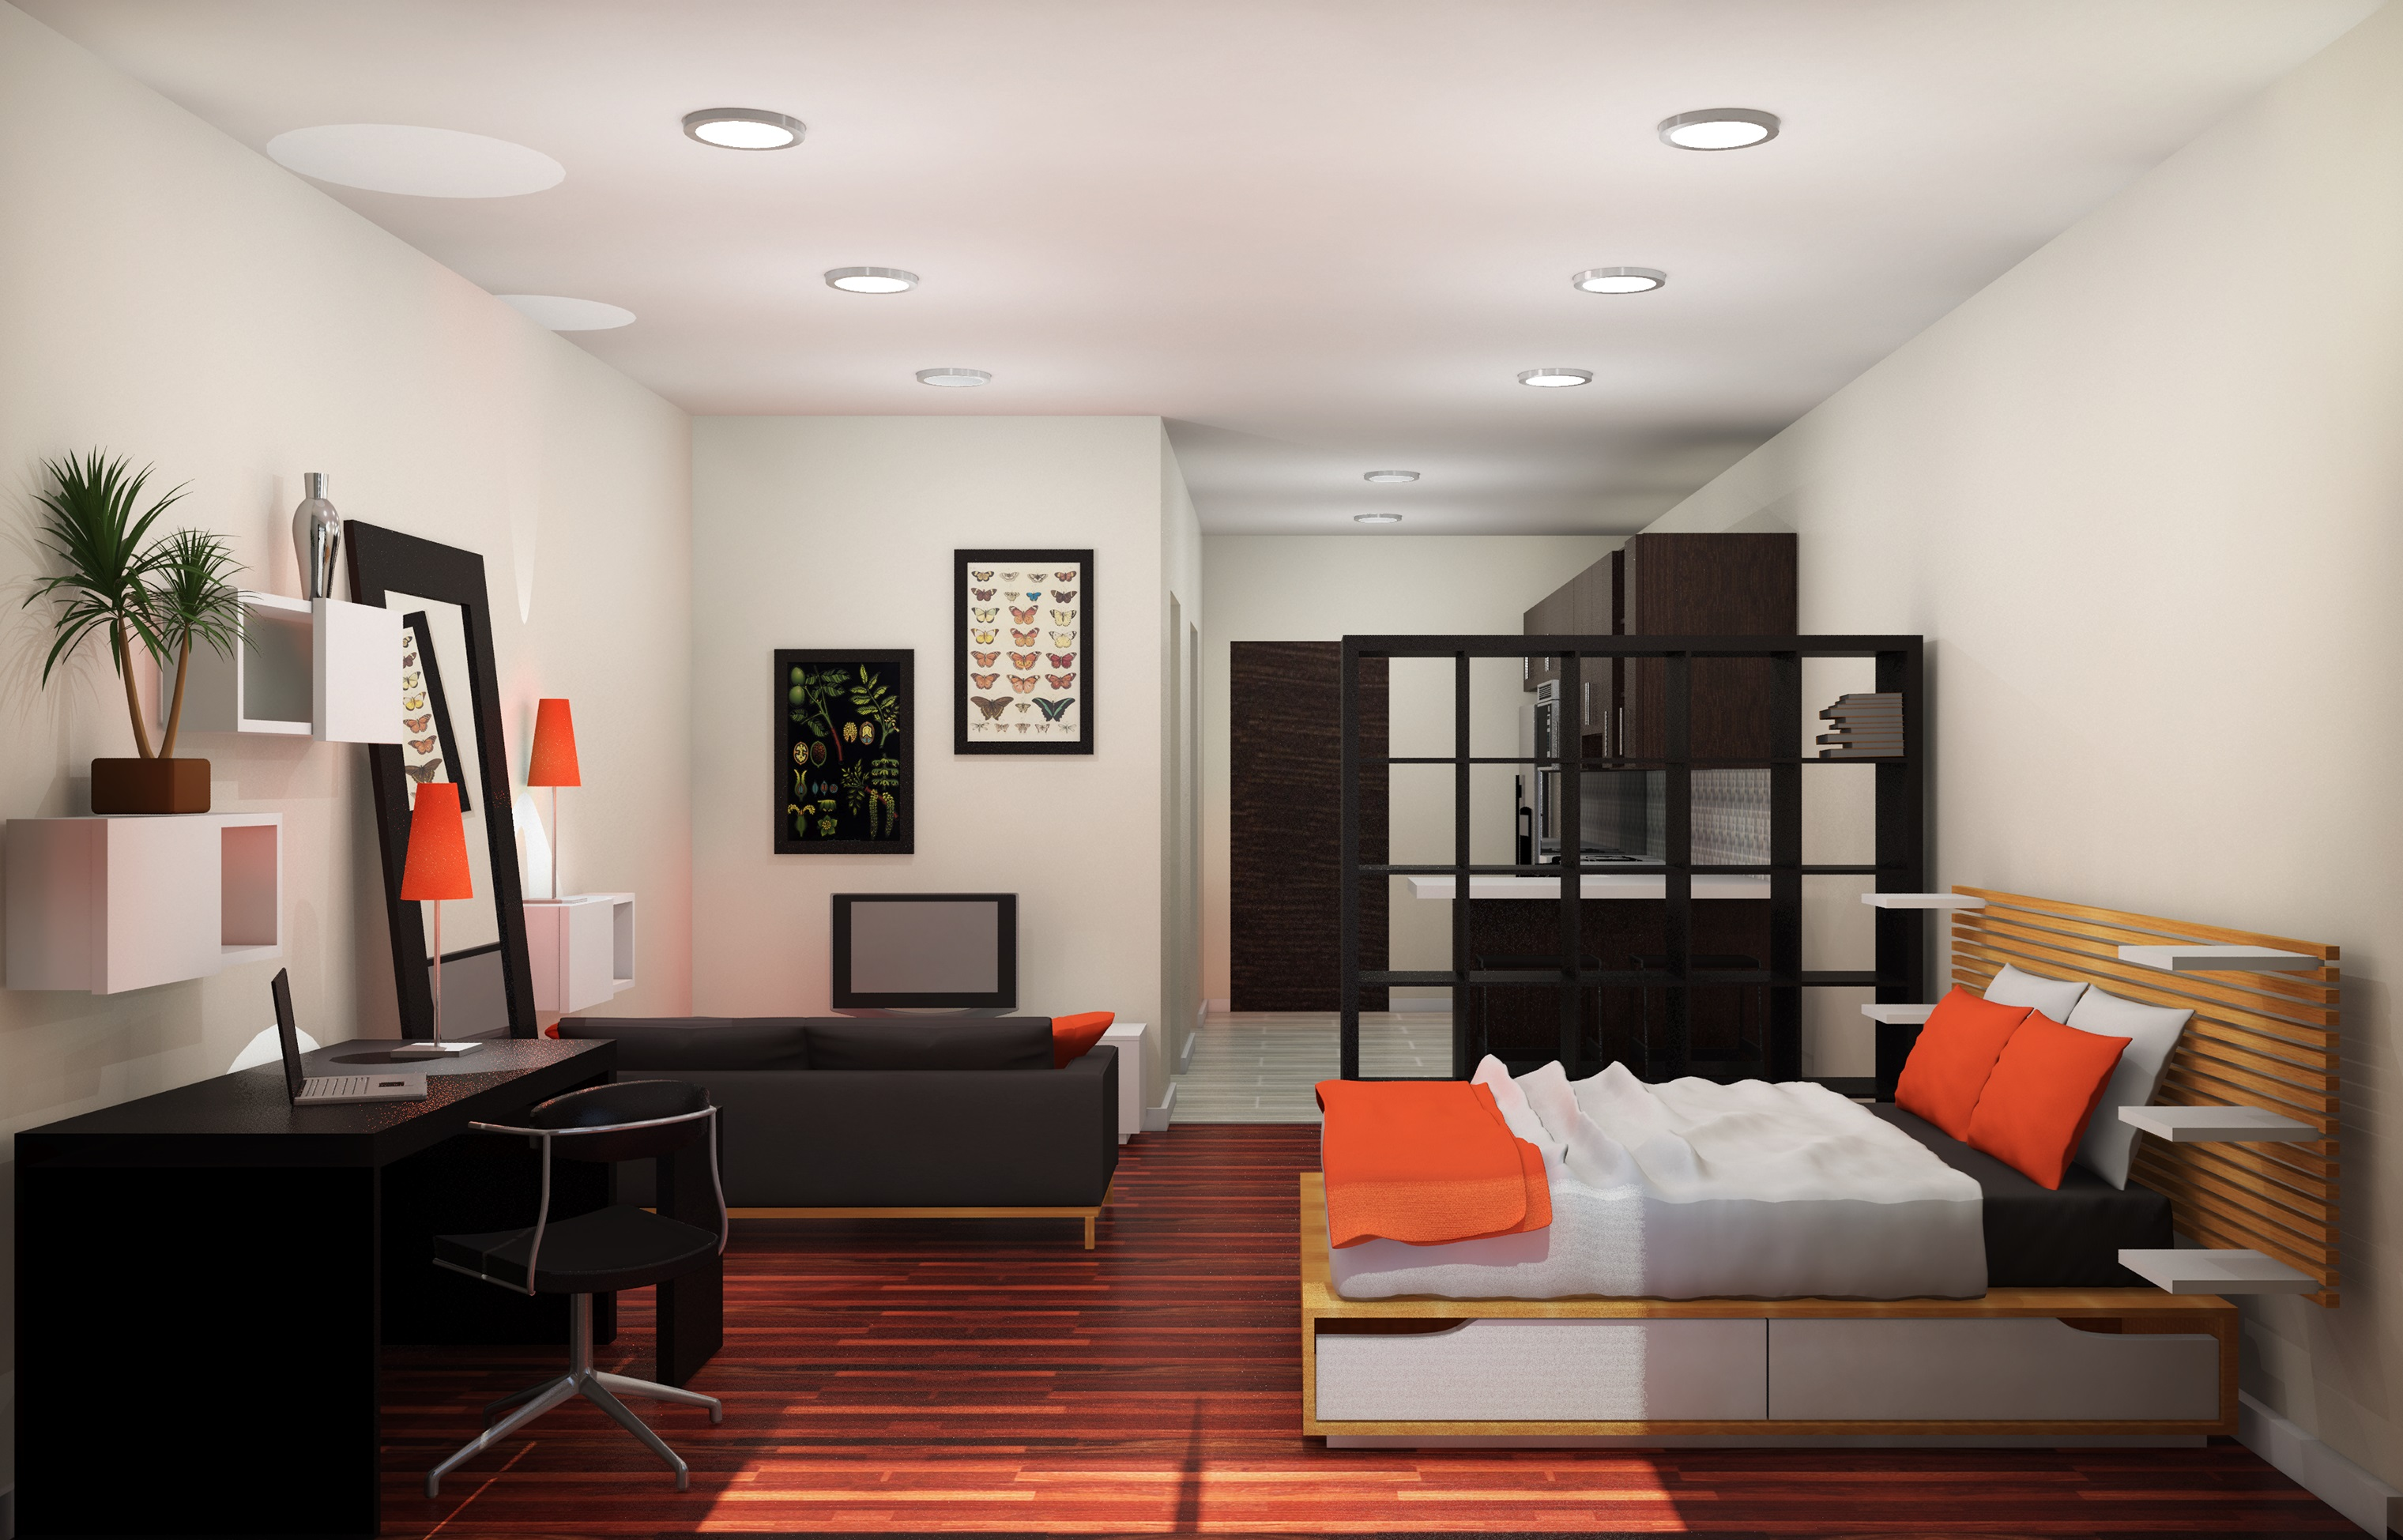 Working with a studio apartment design midcityeast for Apartment decorating